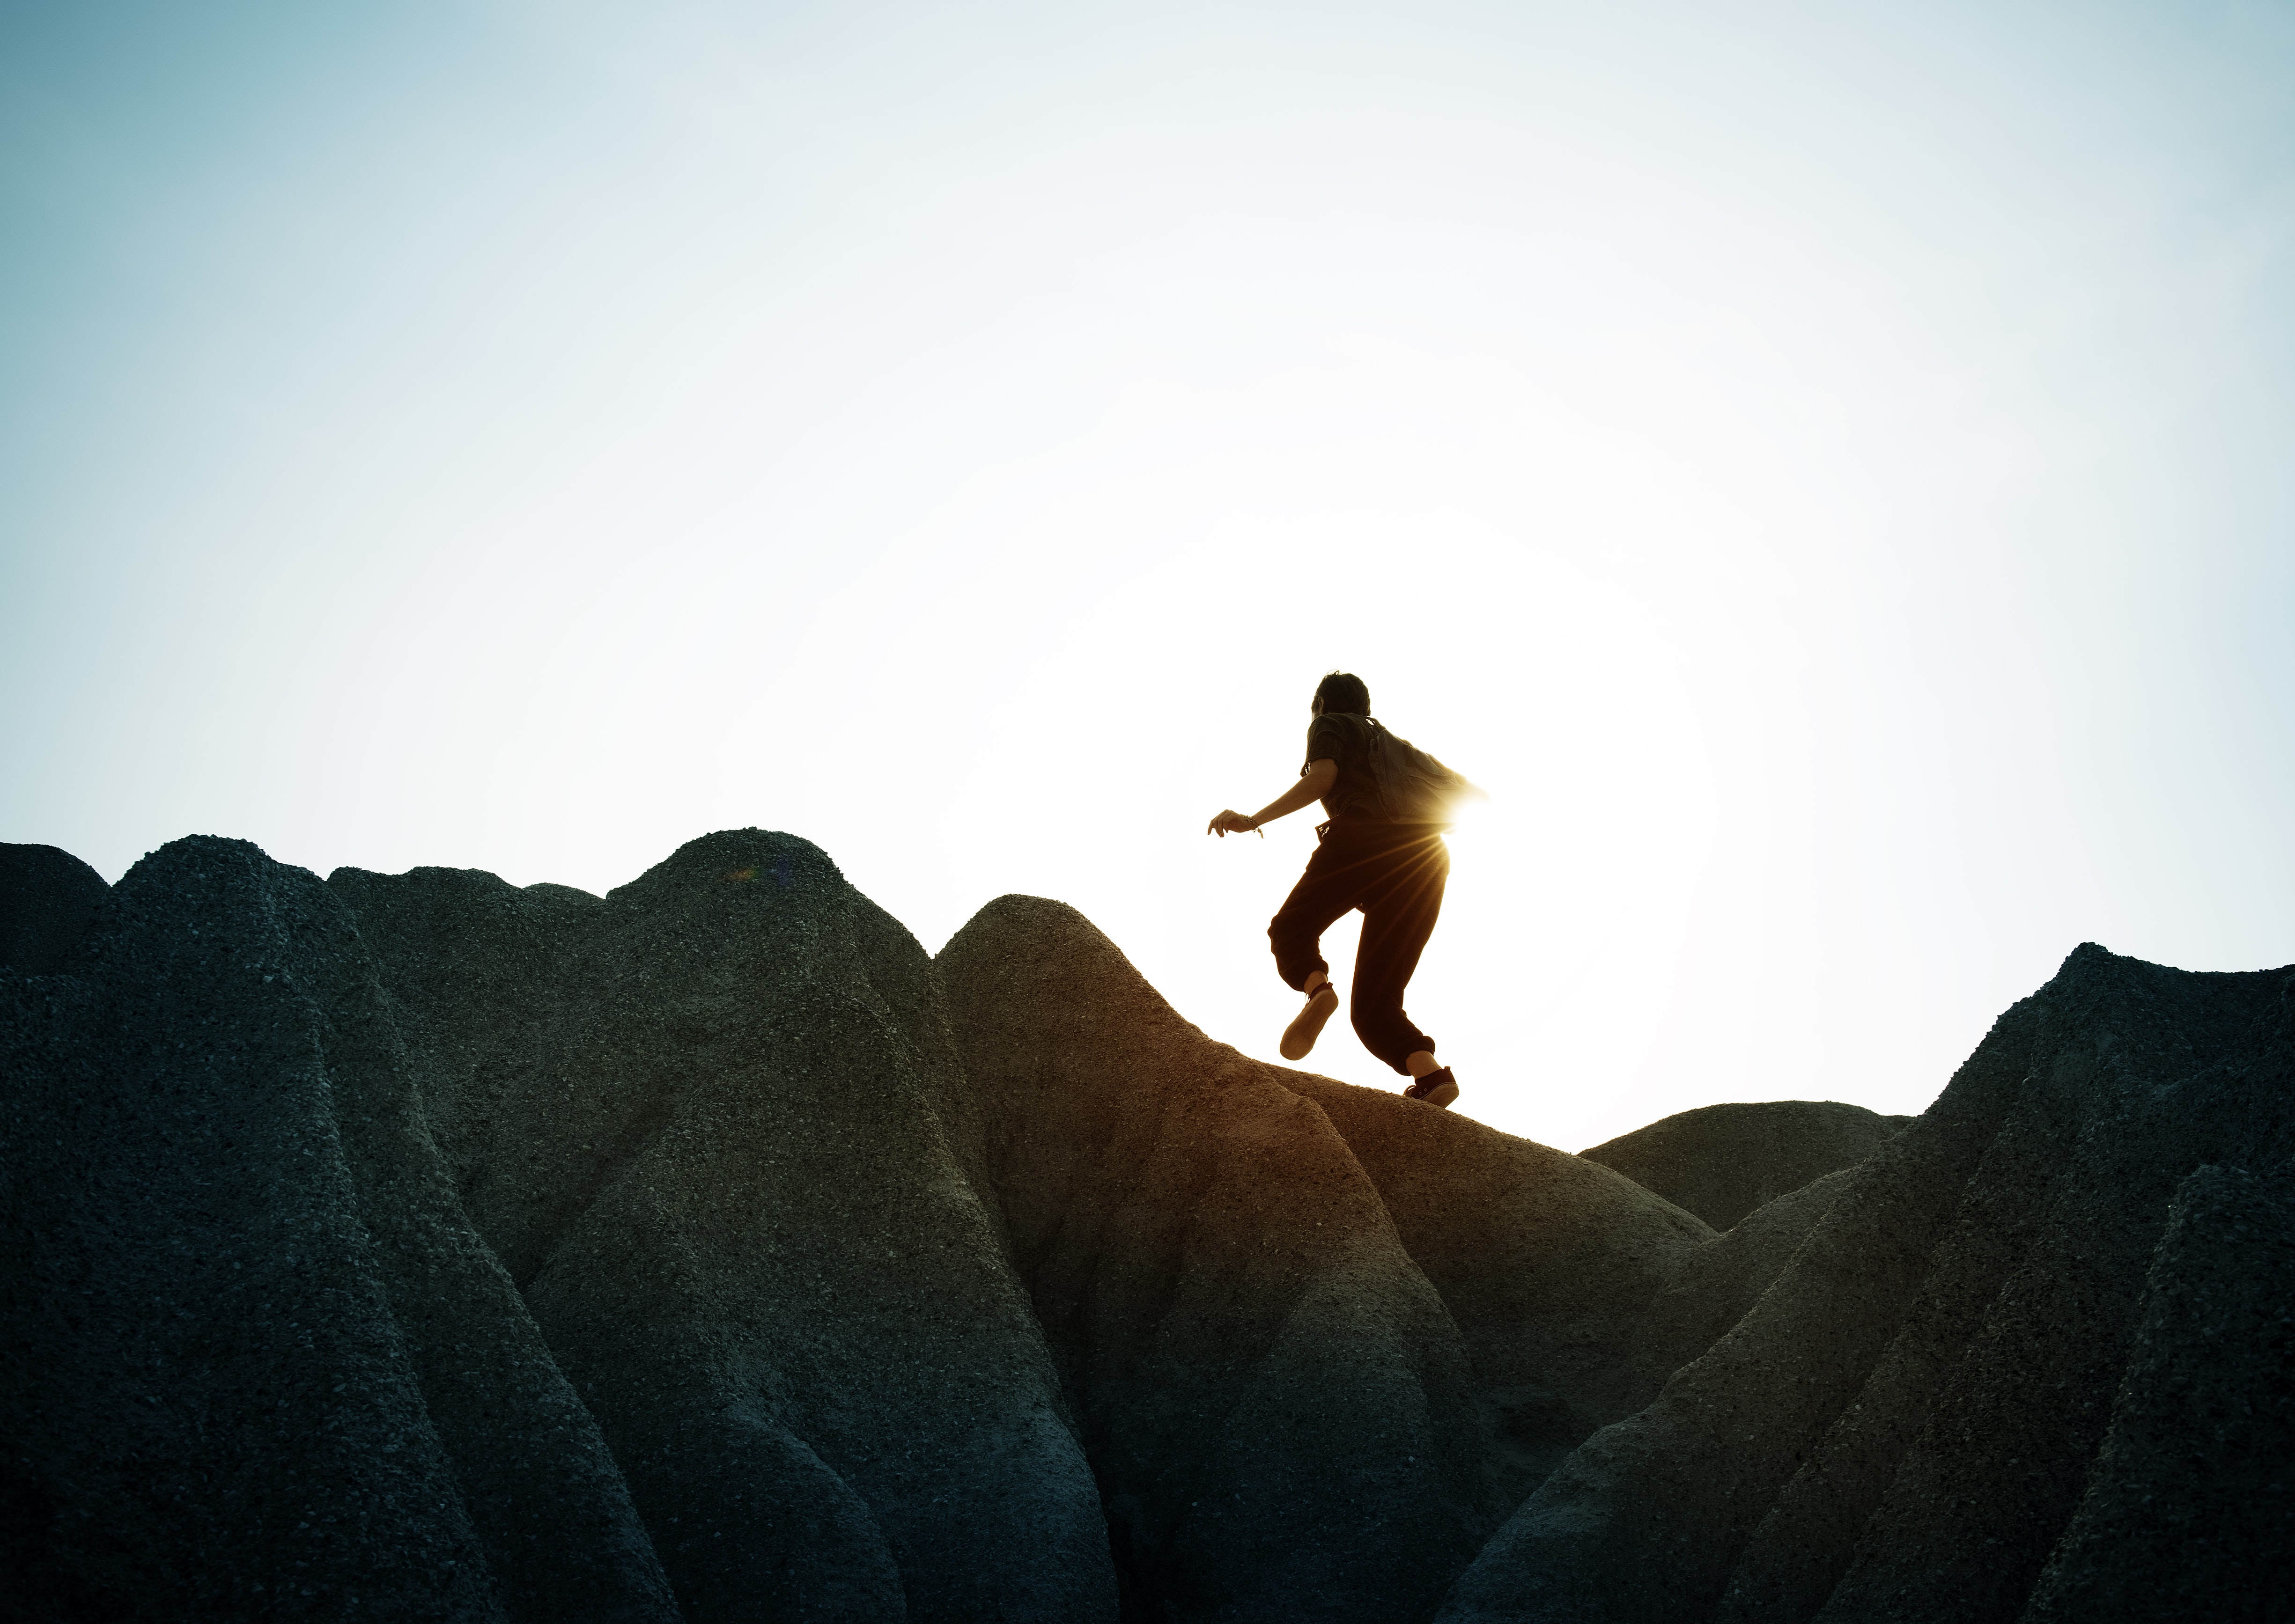 silhouette of person running on top of the mountain